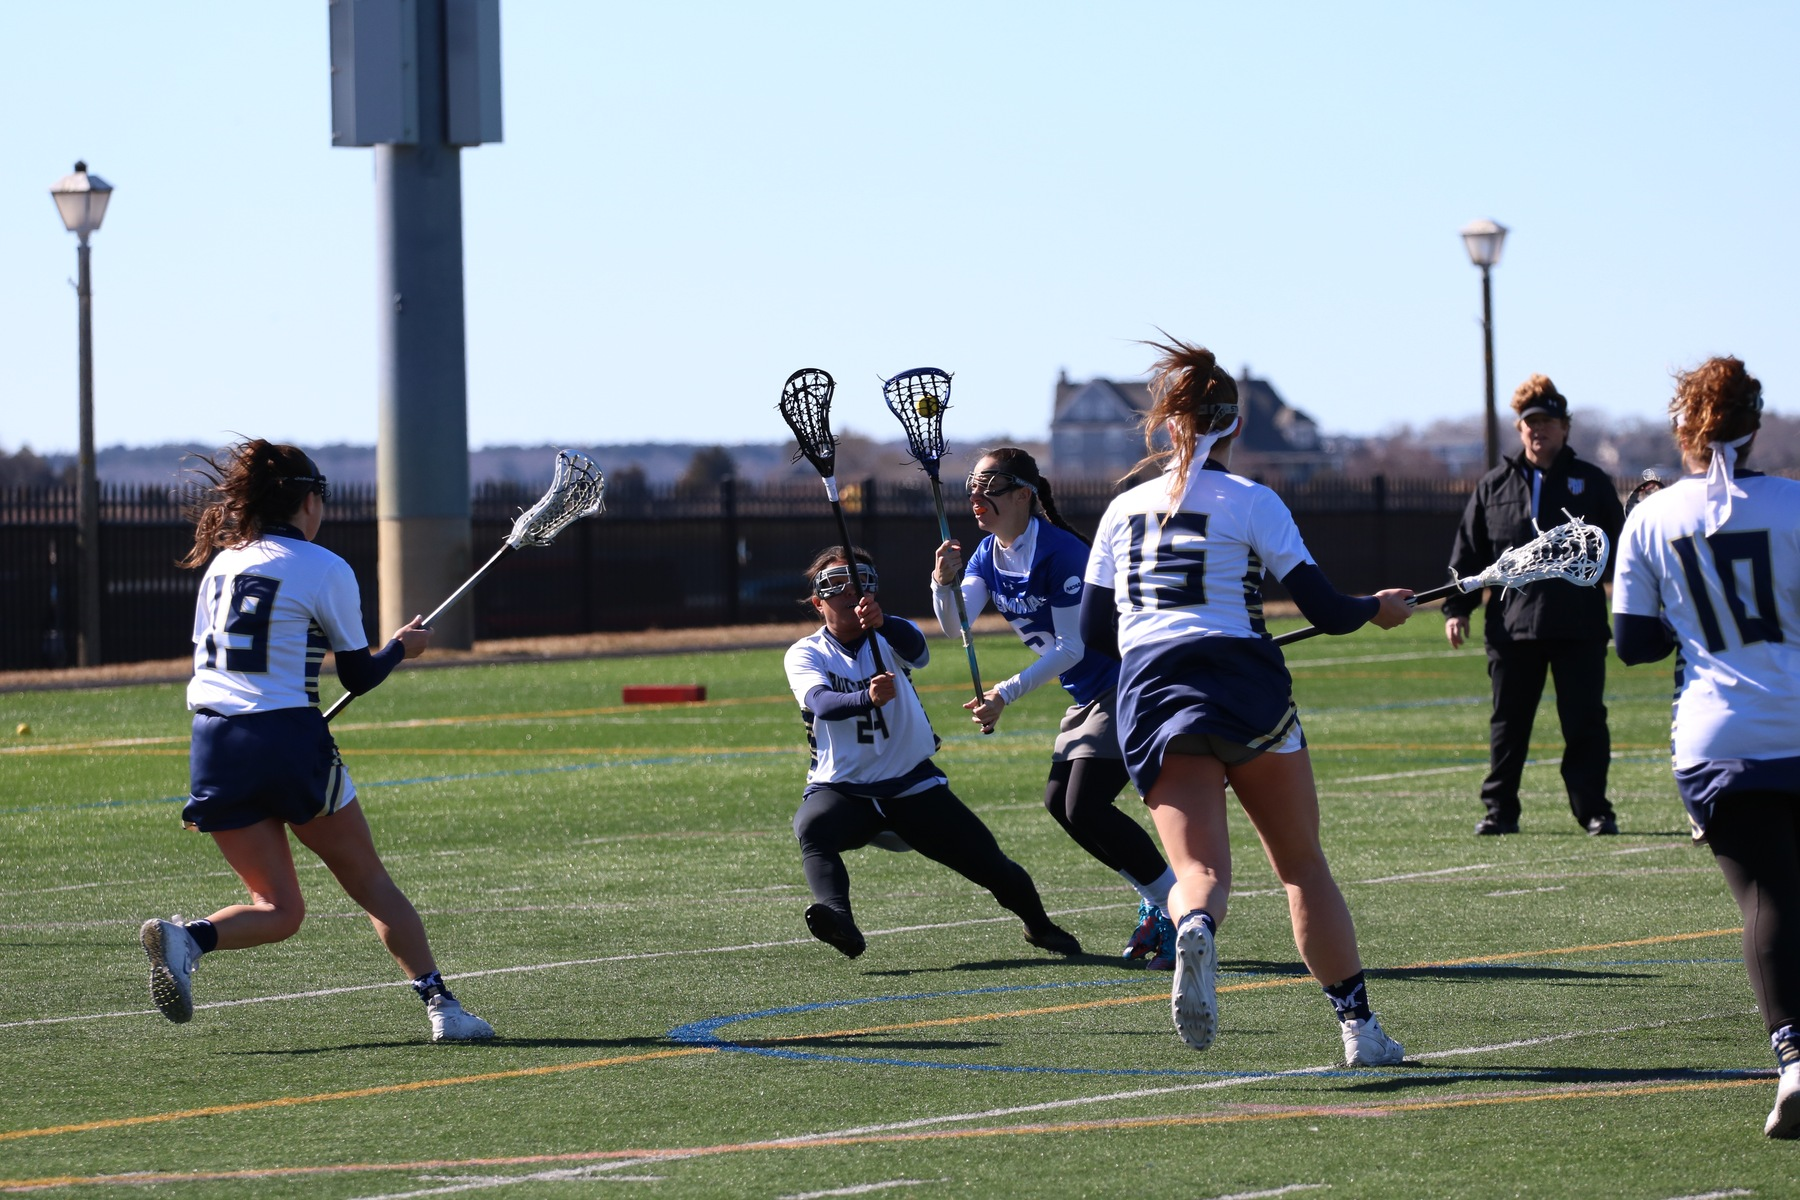 Buccaneer Women's Lacrosse Earns First Shutout Victory in Program History against Bay Path